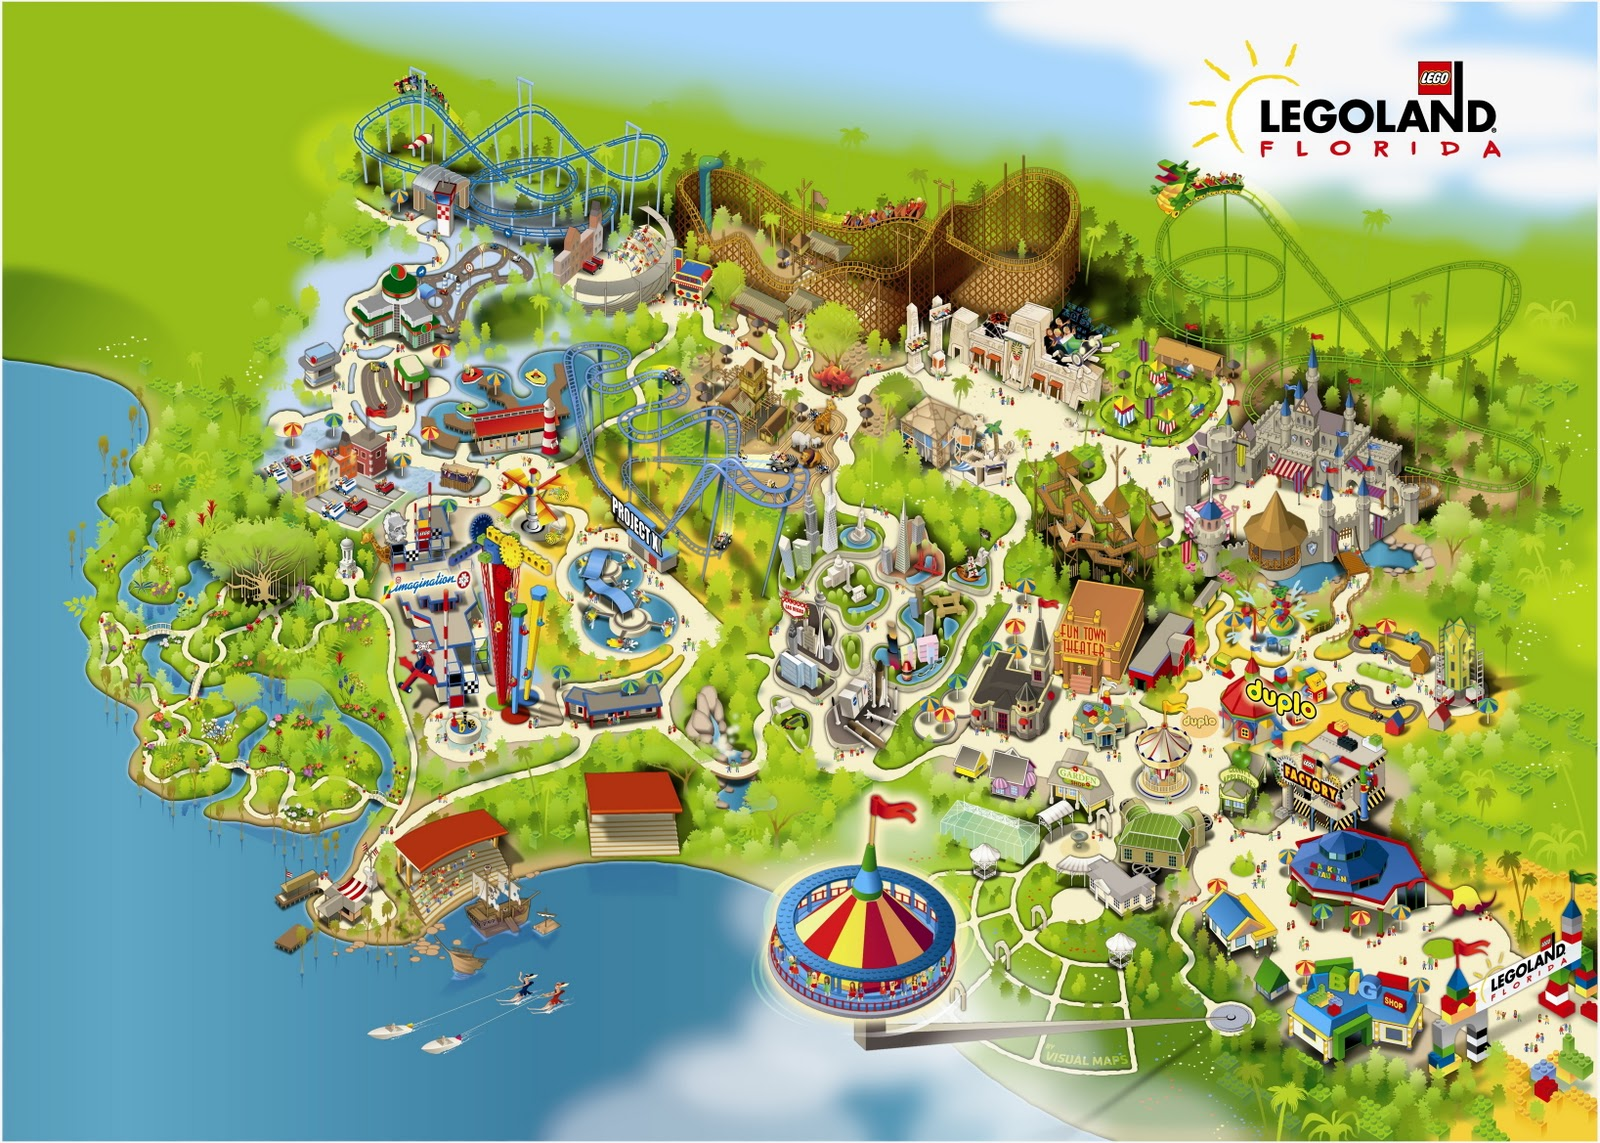 Legoland Florida Map Images